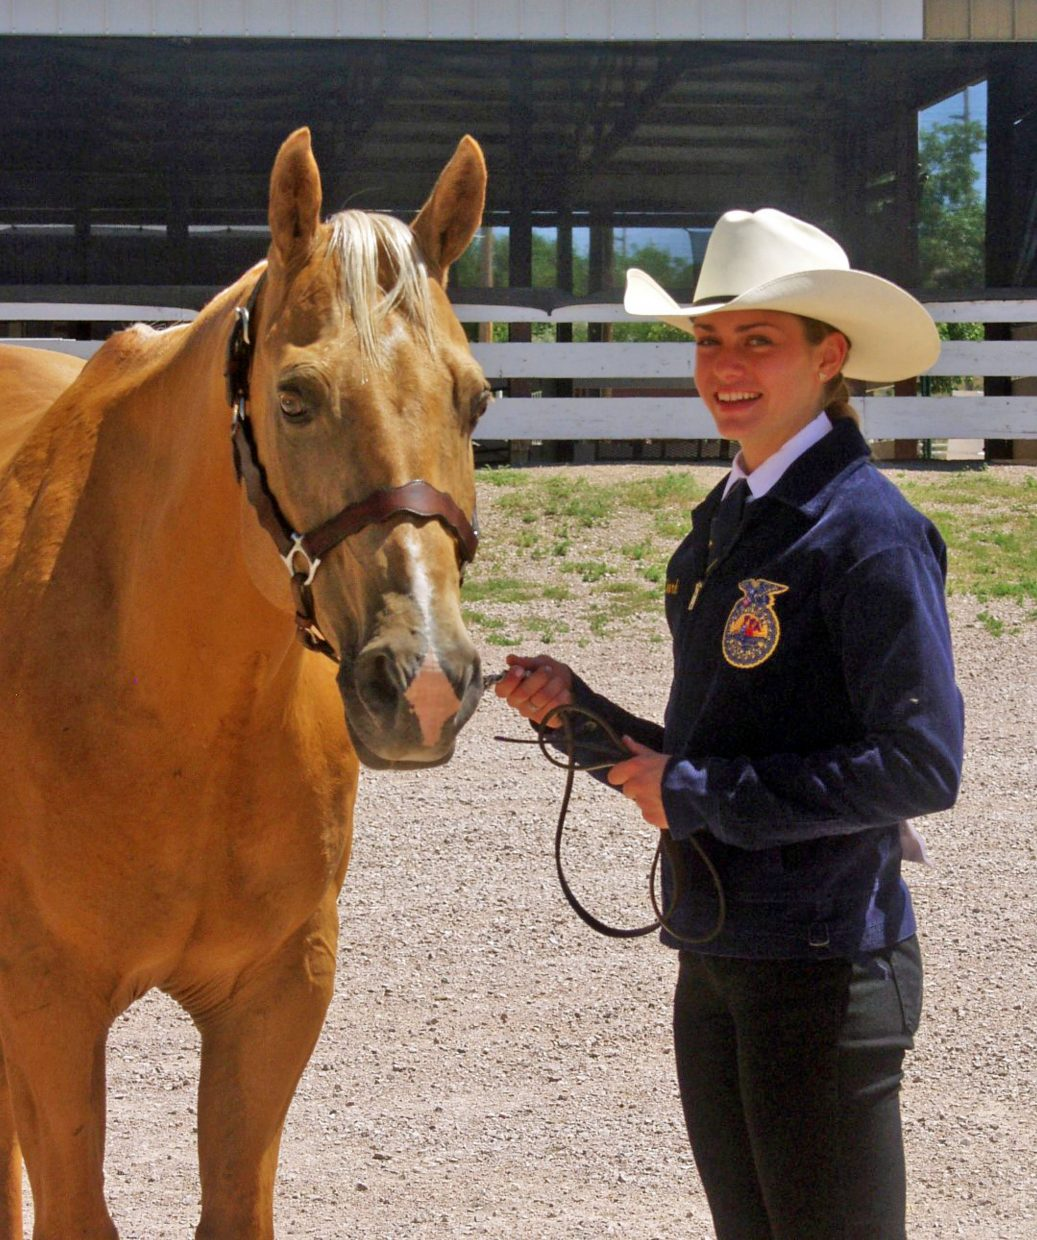 Laura Chord and her gelding Trigger were very successful in many 4-H and FFA ranch horse shows and rodeos. She passed away in 2016. Photo courtesy Chord family